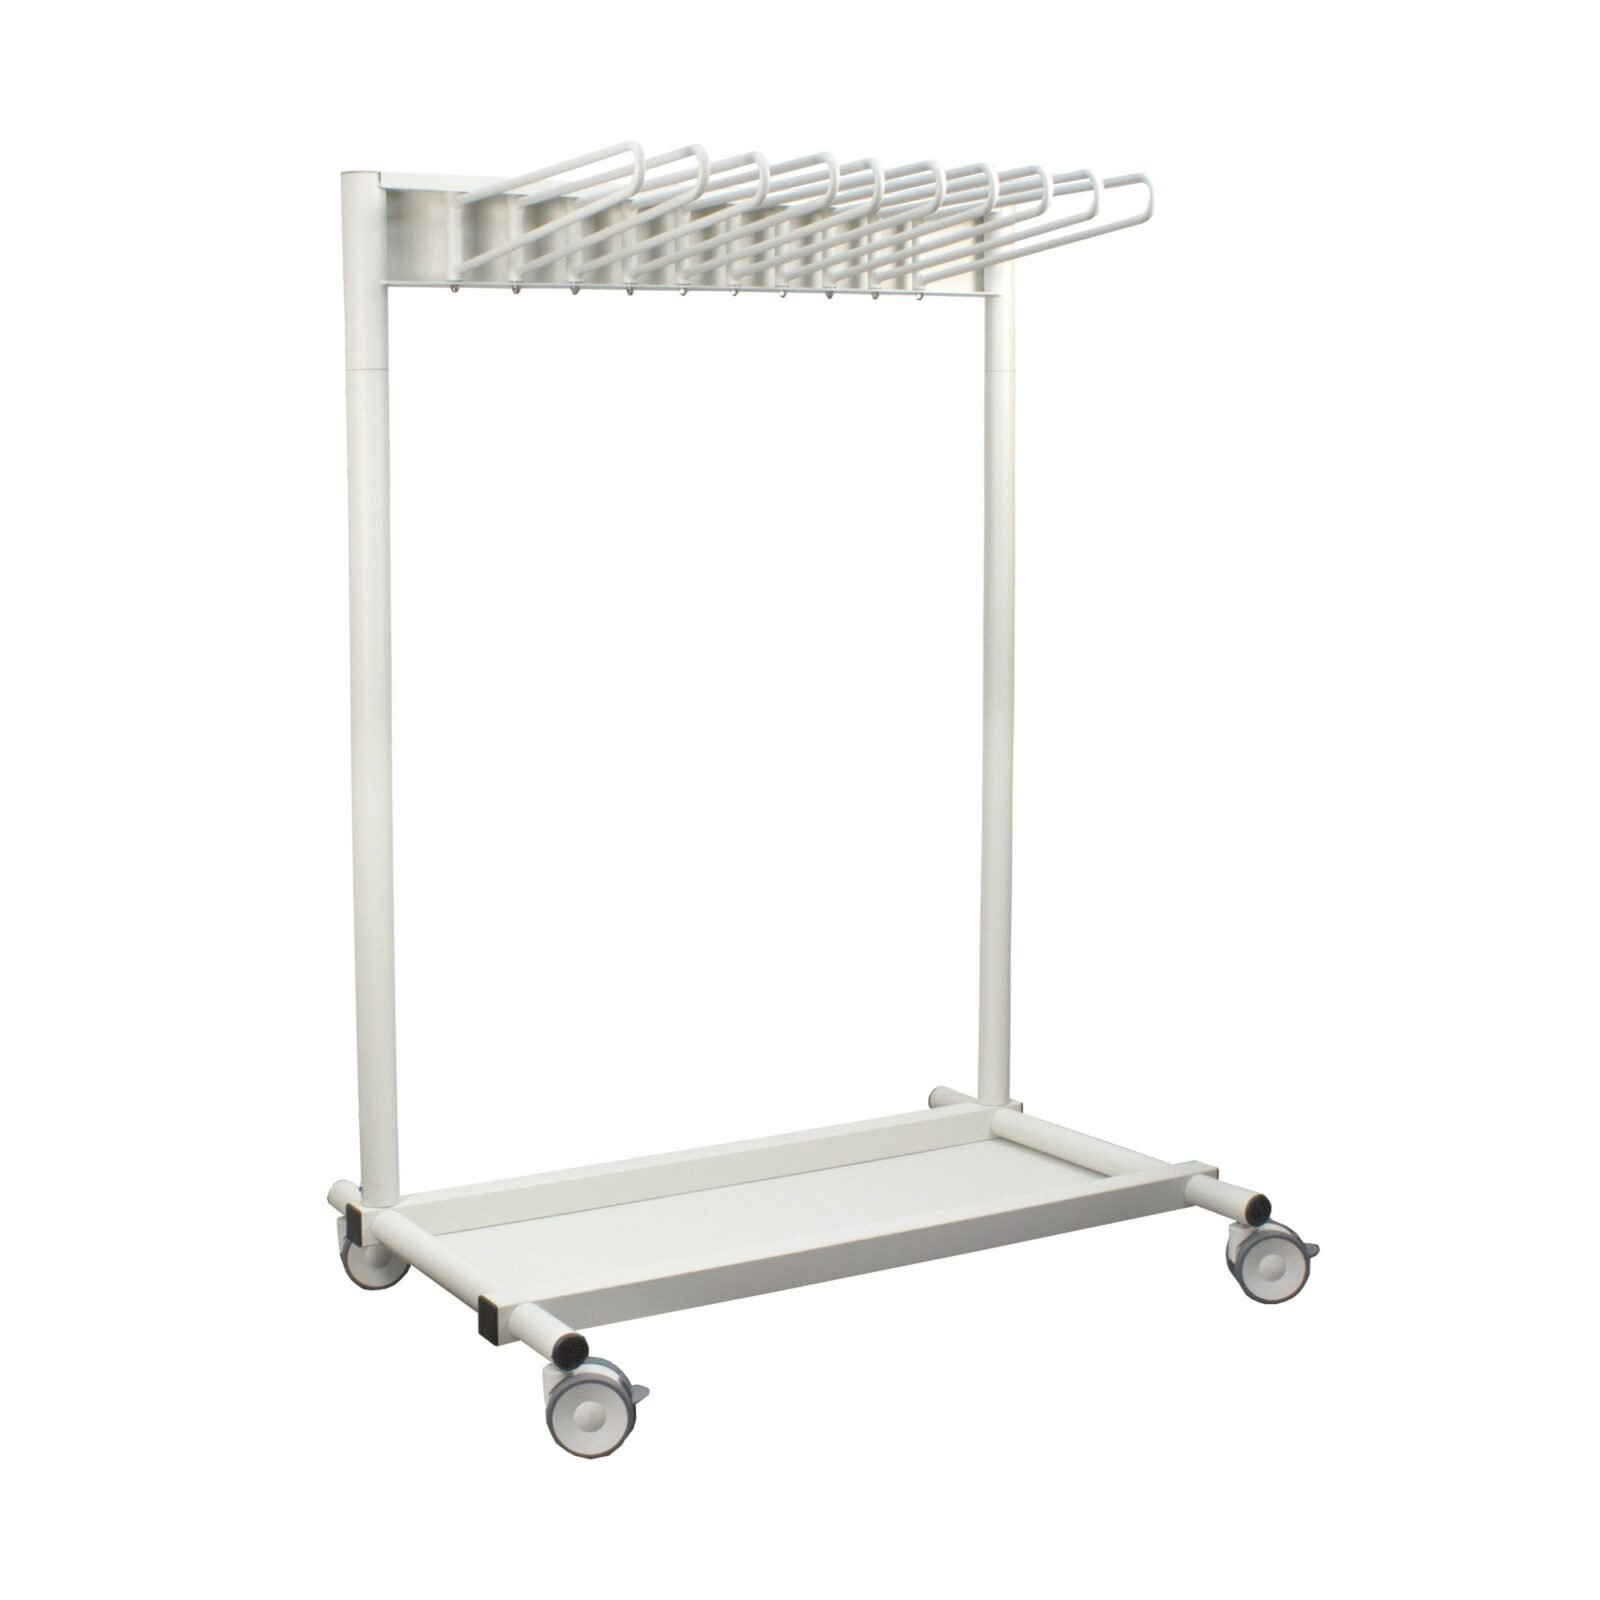 Revolution 10 Arm Mobile Apron Rack